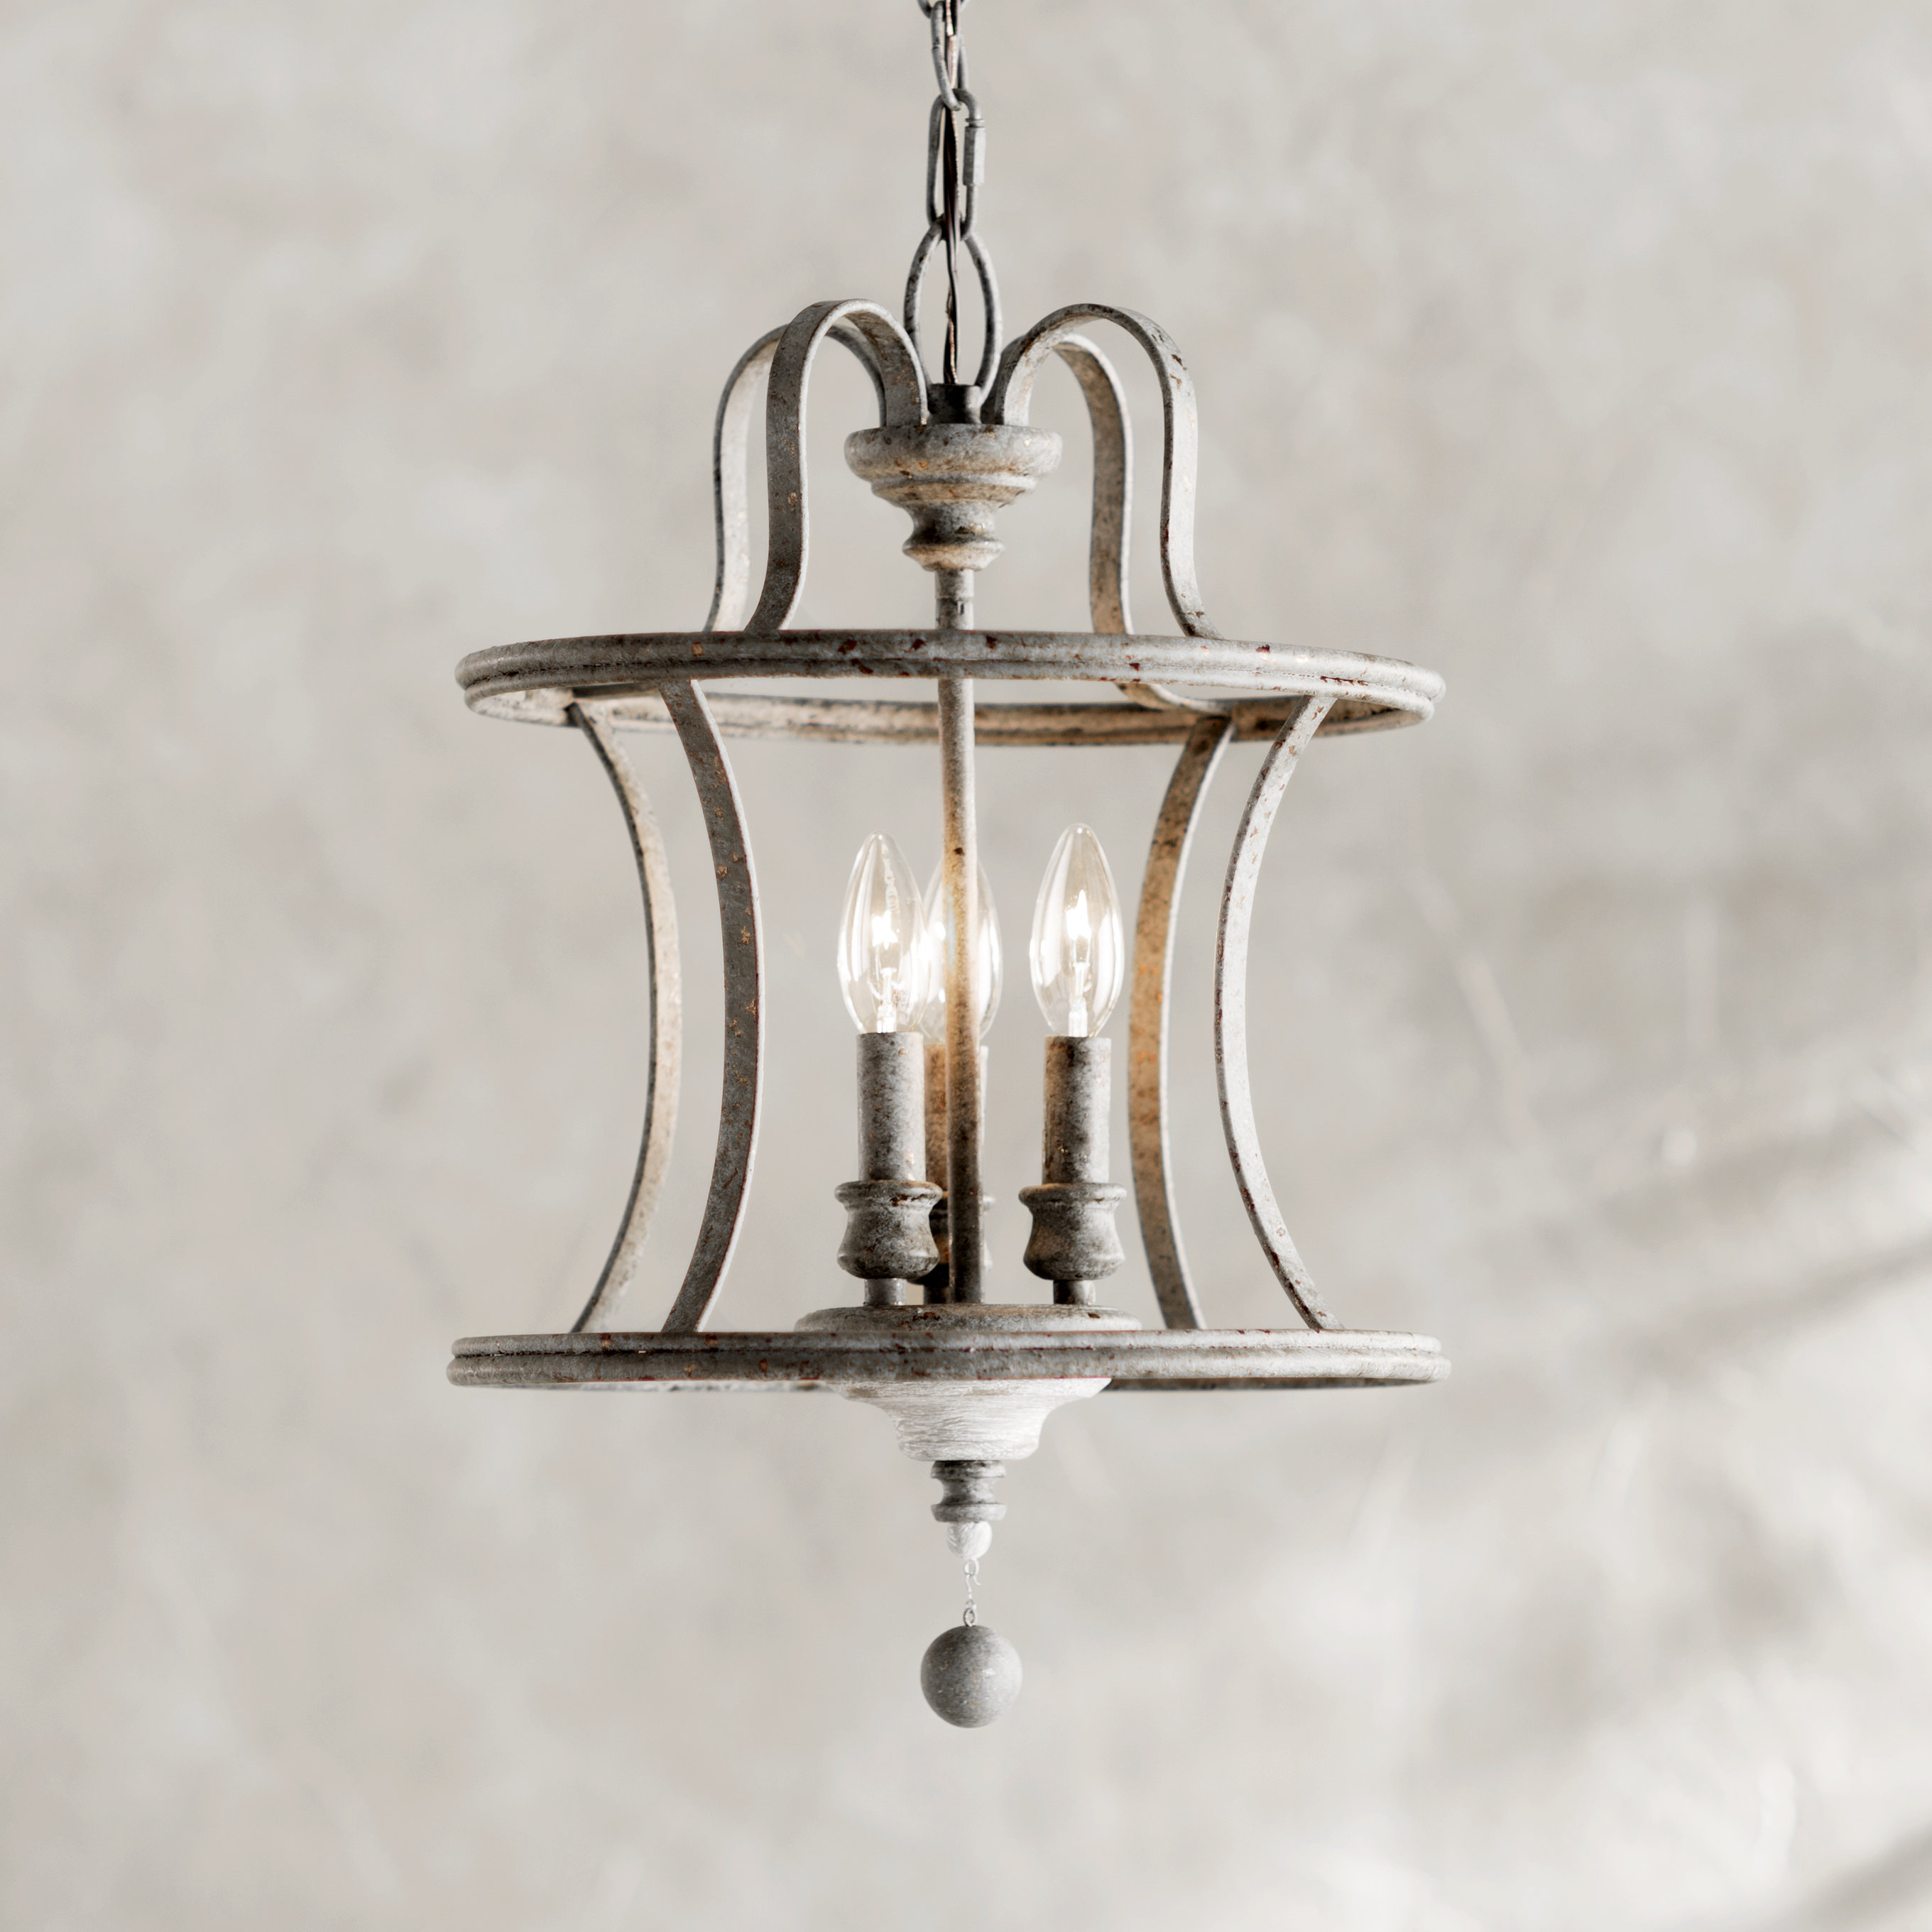 Farmhouse & Rustic Lark Manor Pendants | Birch Lane Throughout Armande 4 Light Lantern Drum Pendants (View 13 of 30)